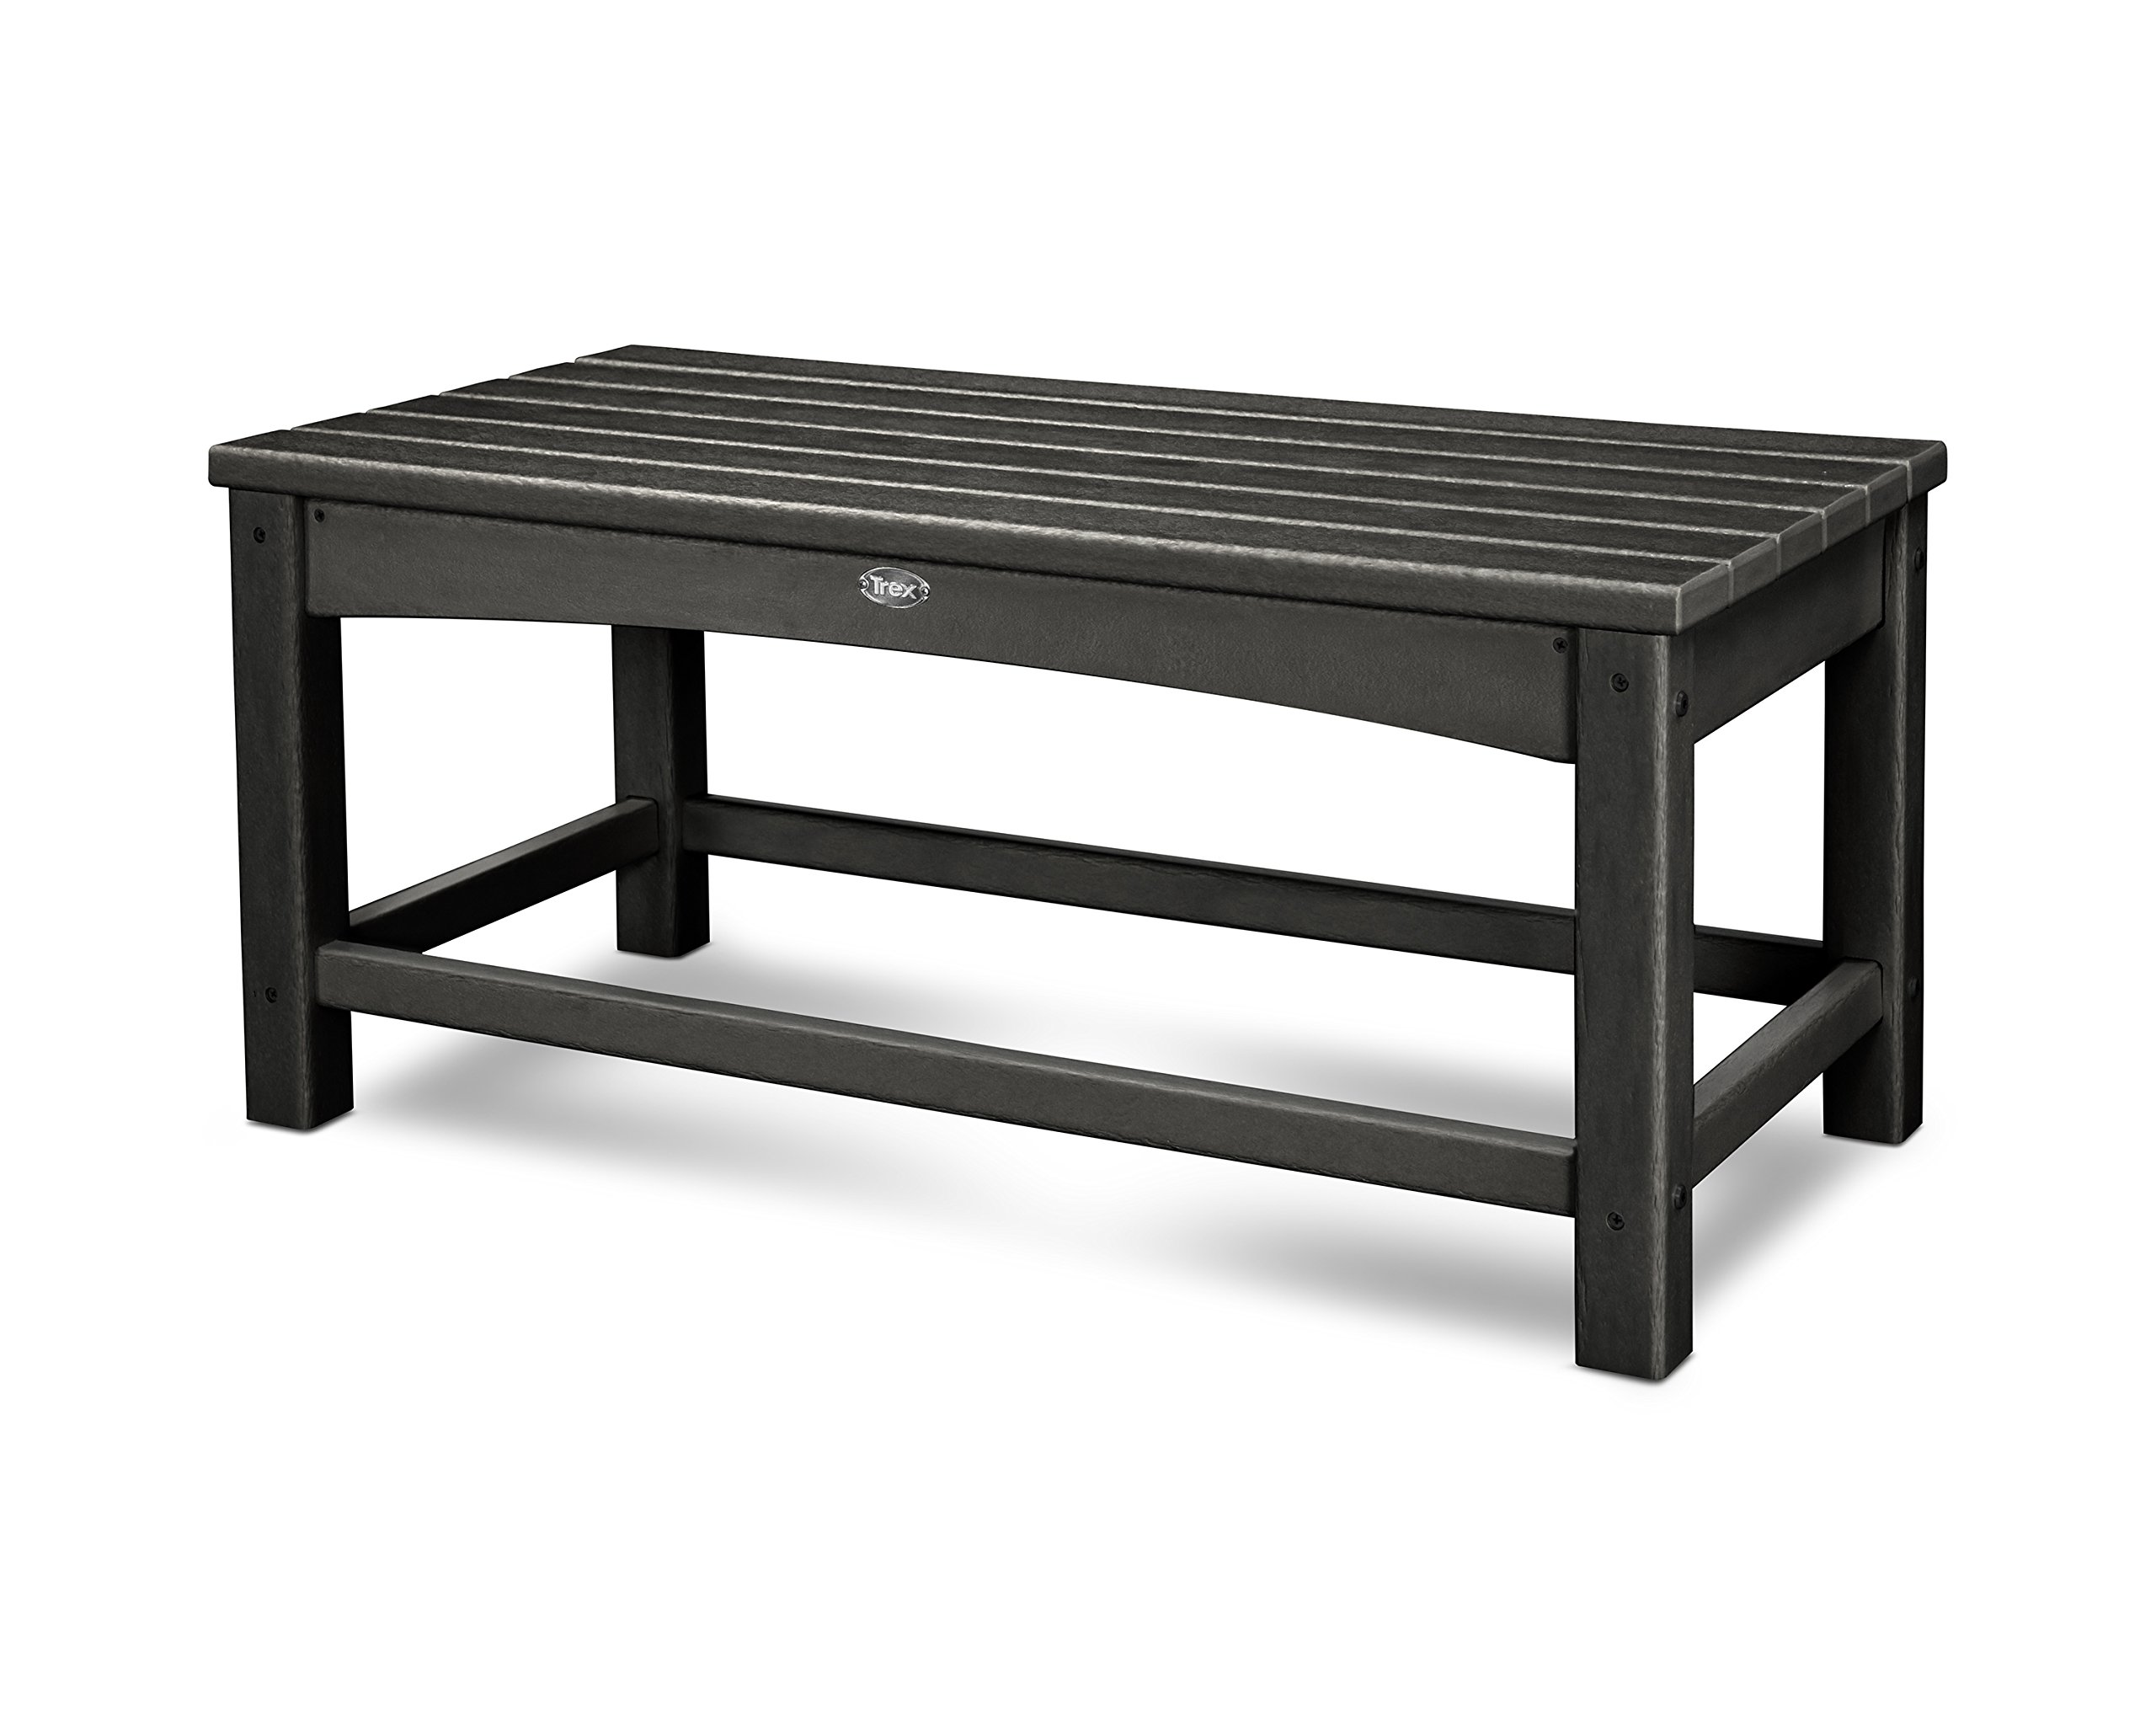 Trex Outdoor Furniture Rockport Club Coffee Table, Charcoal Black